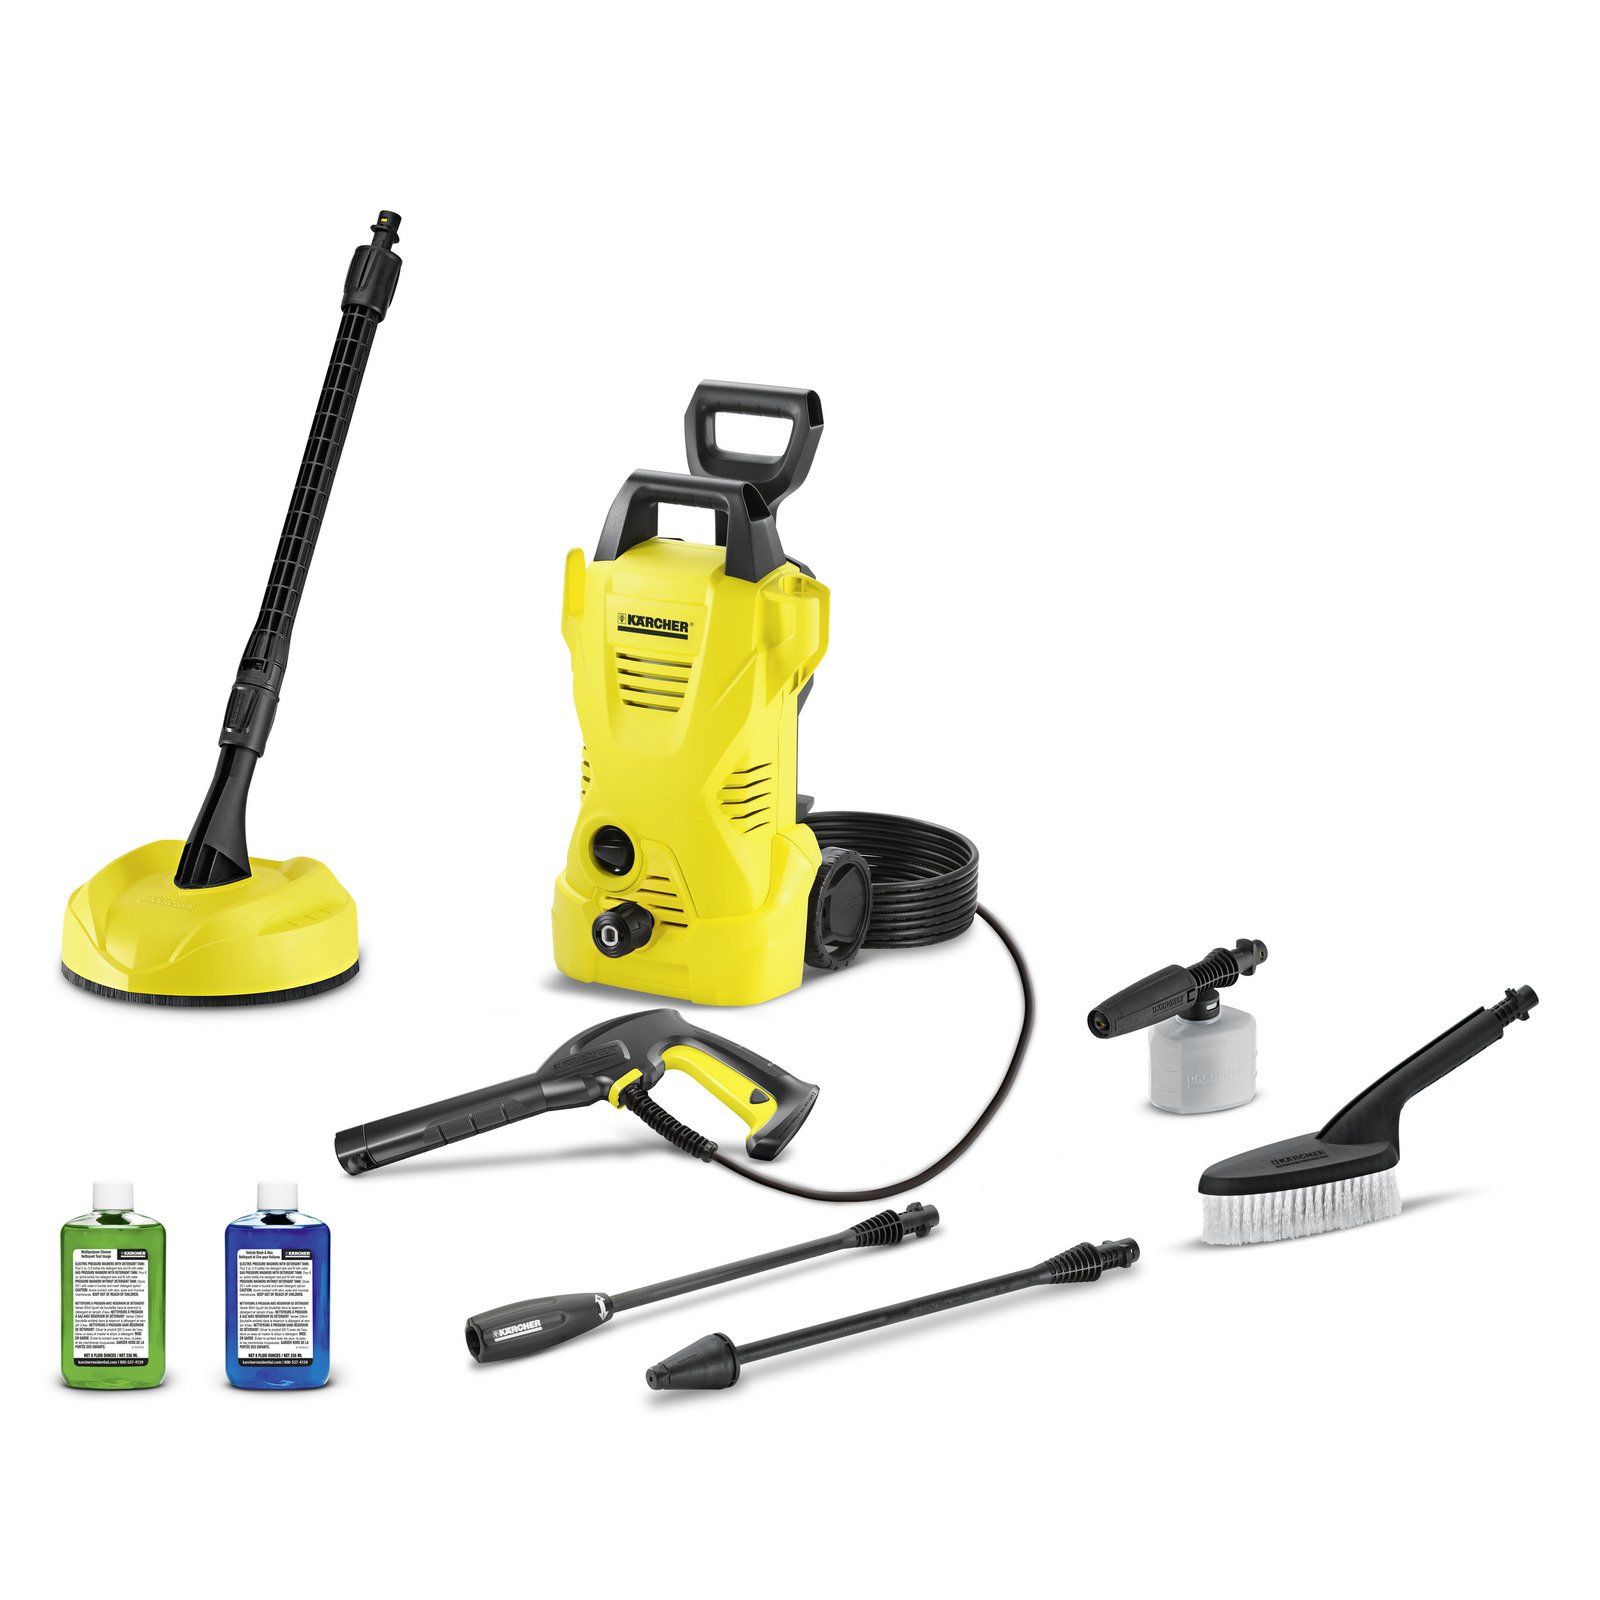 k2 electric pressure washer w car home kit 1600 psi karcher. Black Bedroom Furniture Sets. Home Design Ideas